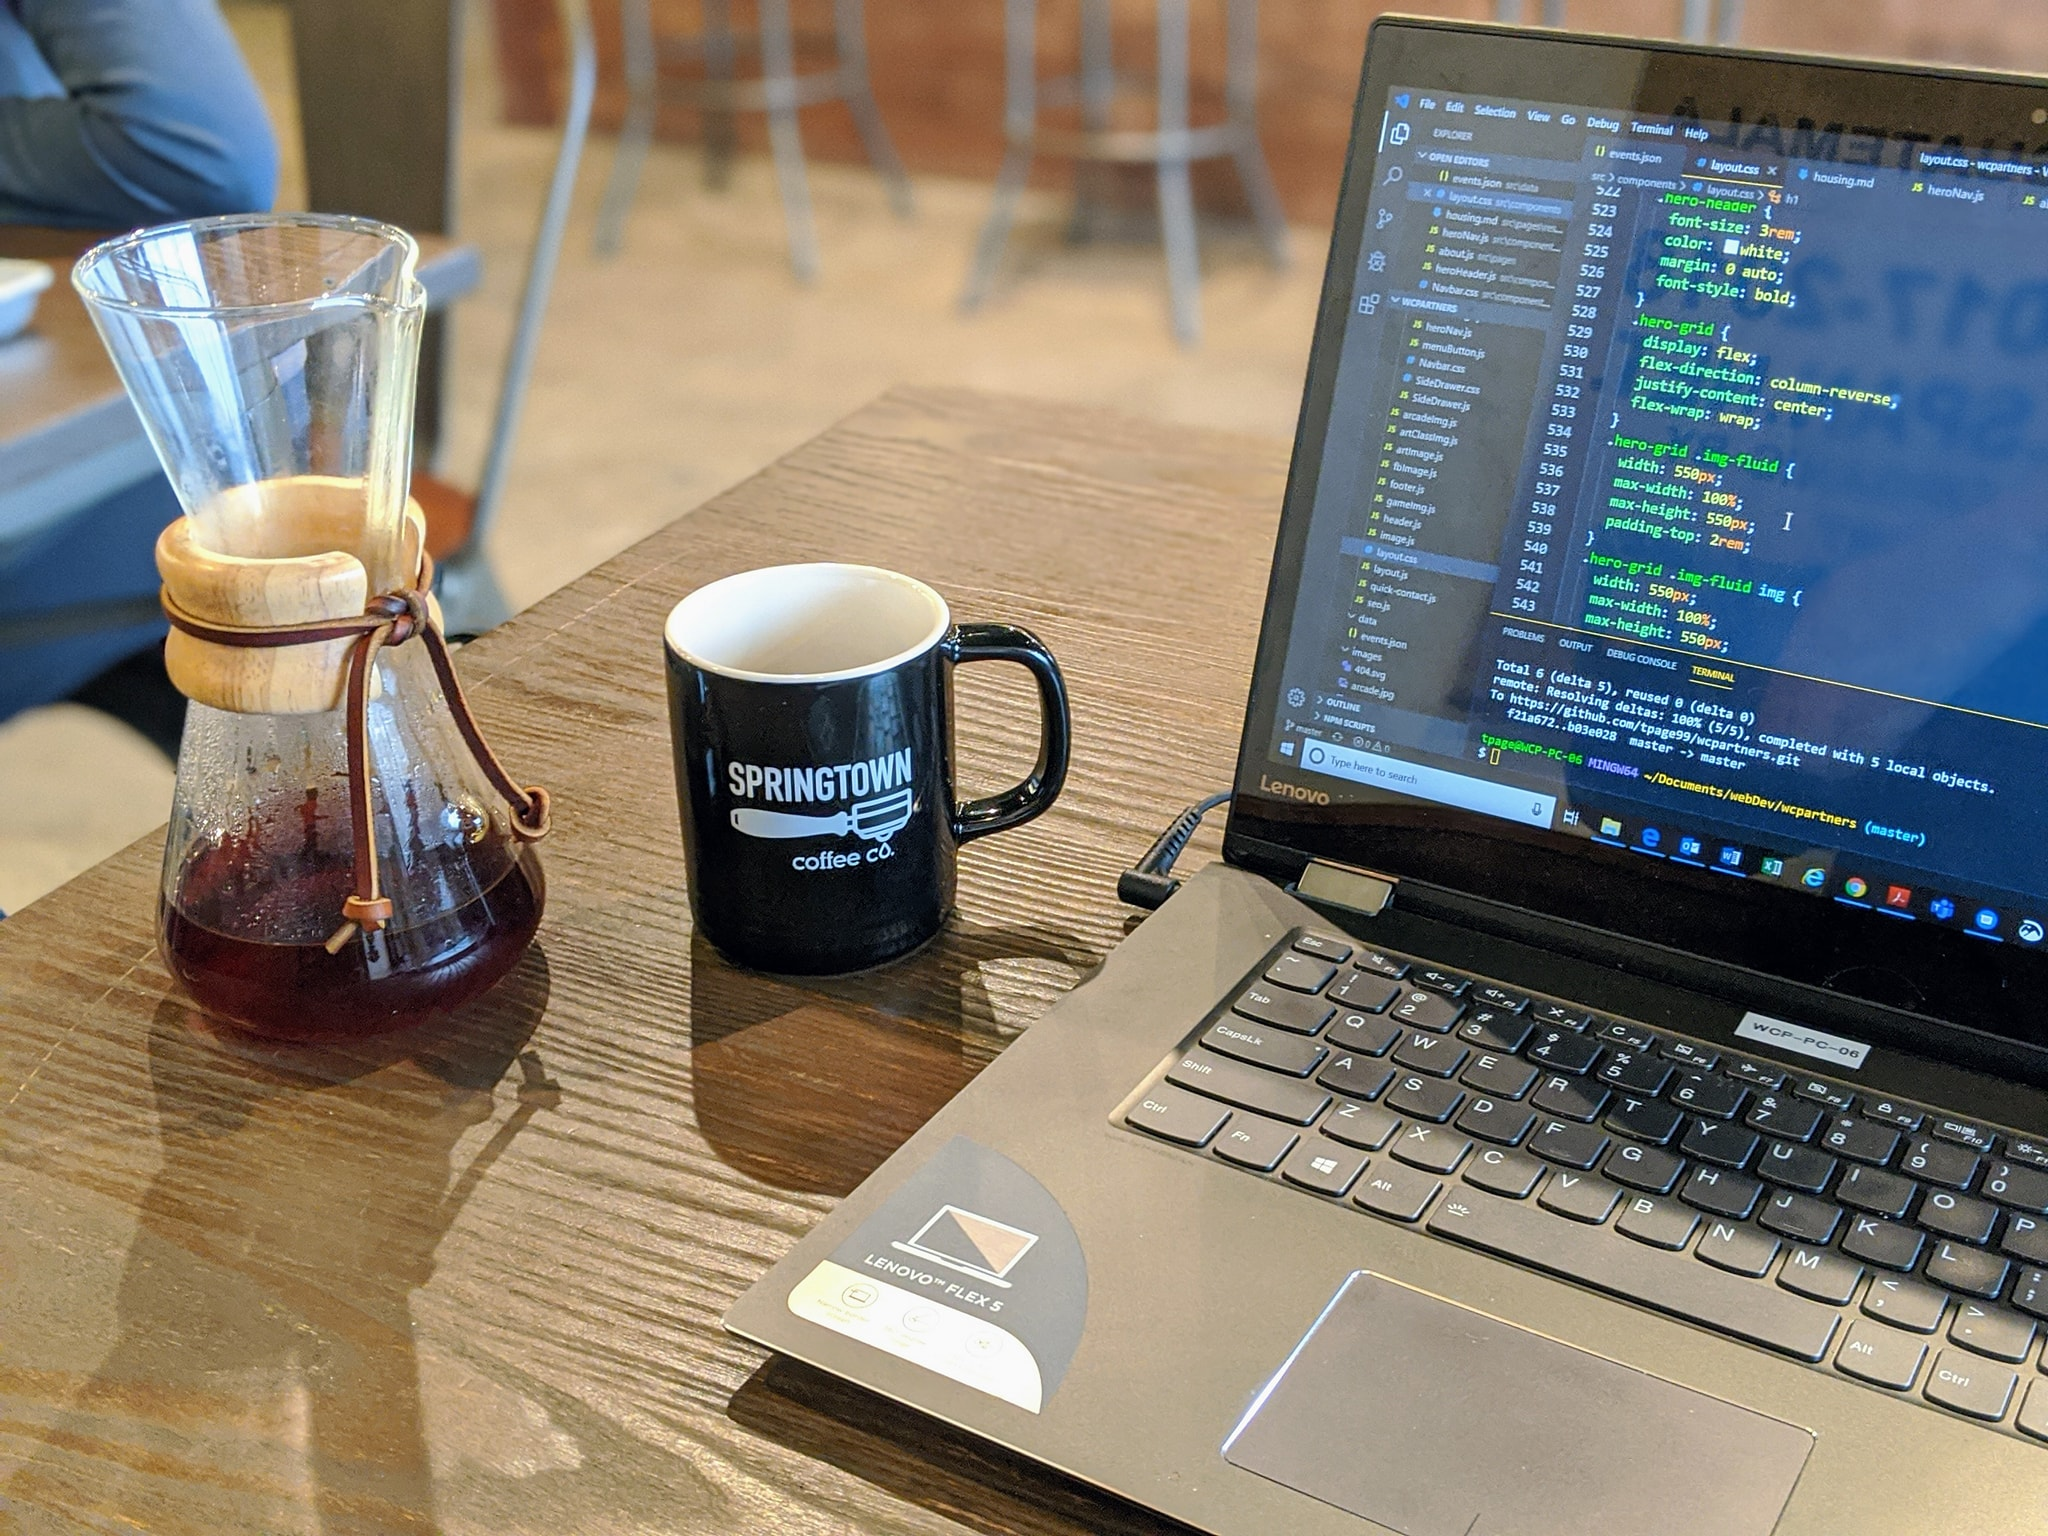 coffee mug with springtown coffee logo next to a small chemex and laptop open with code on screen